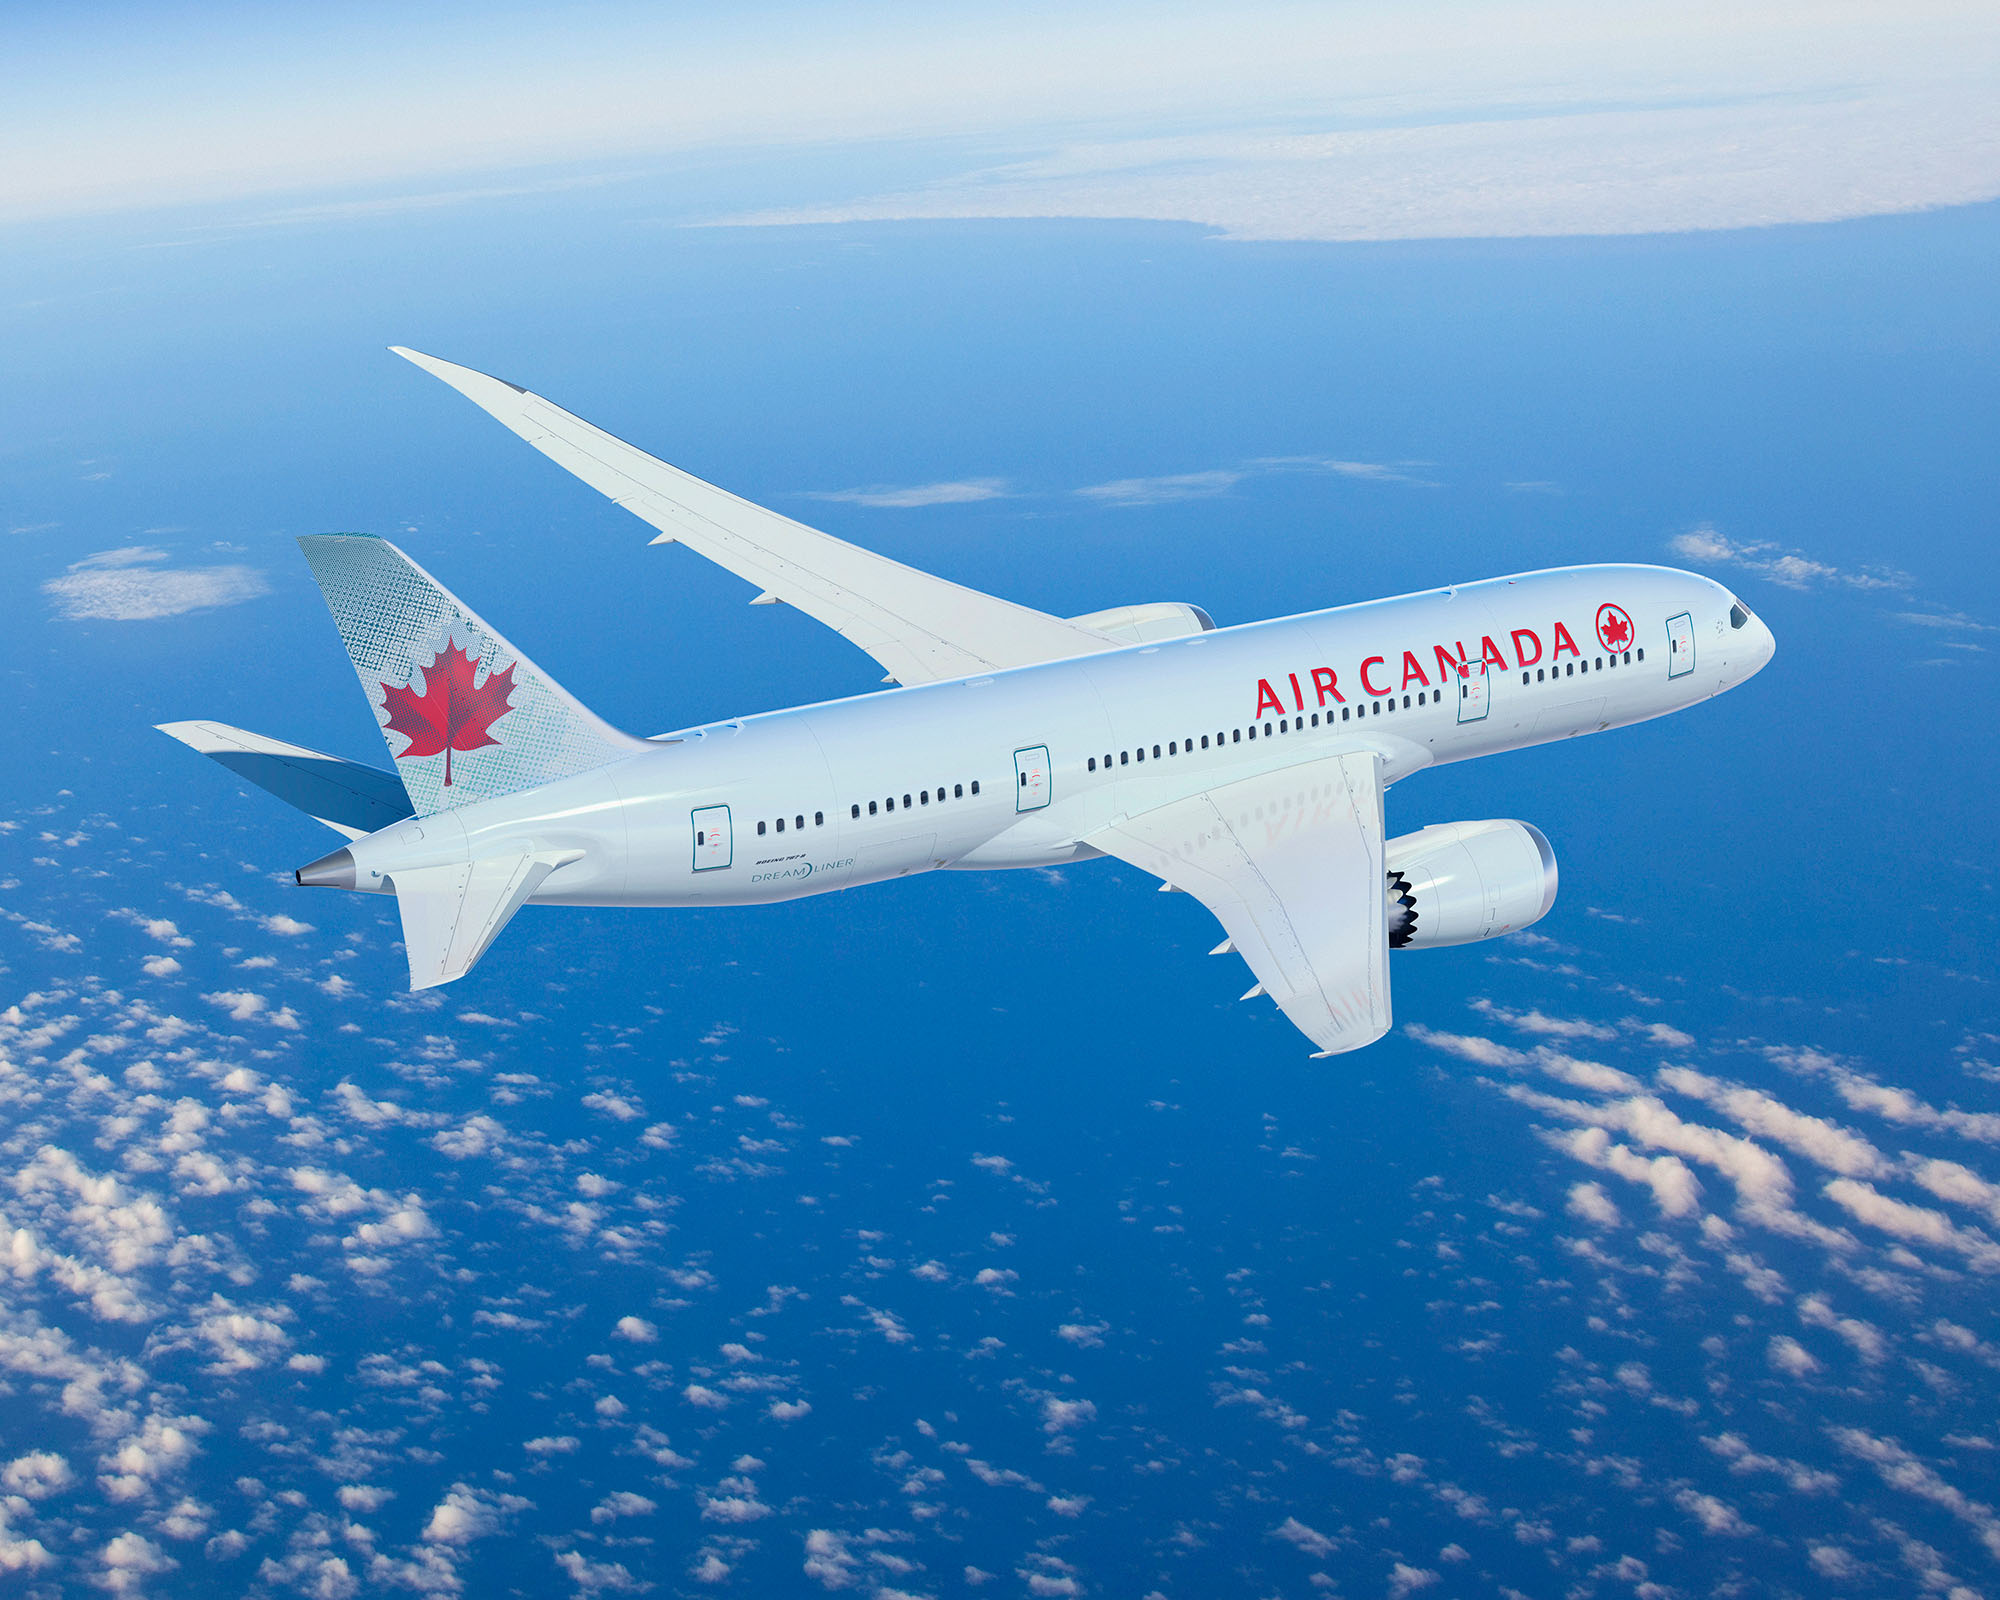 Air Canada's New Product